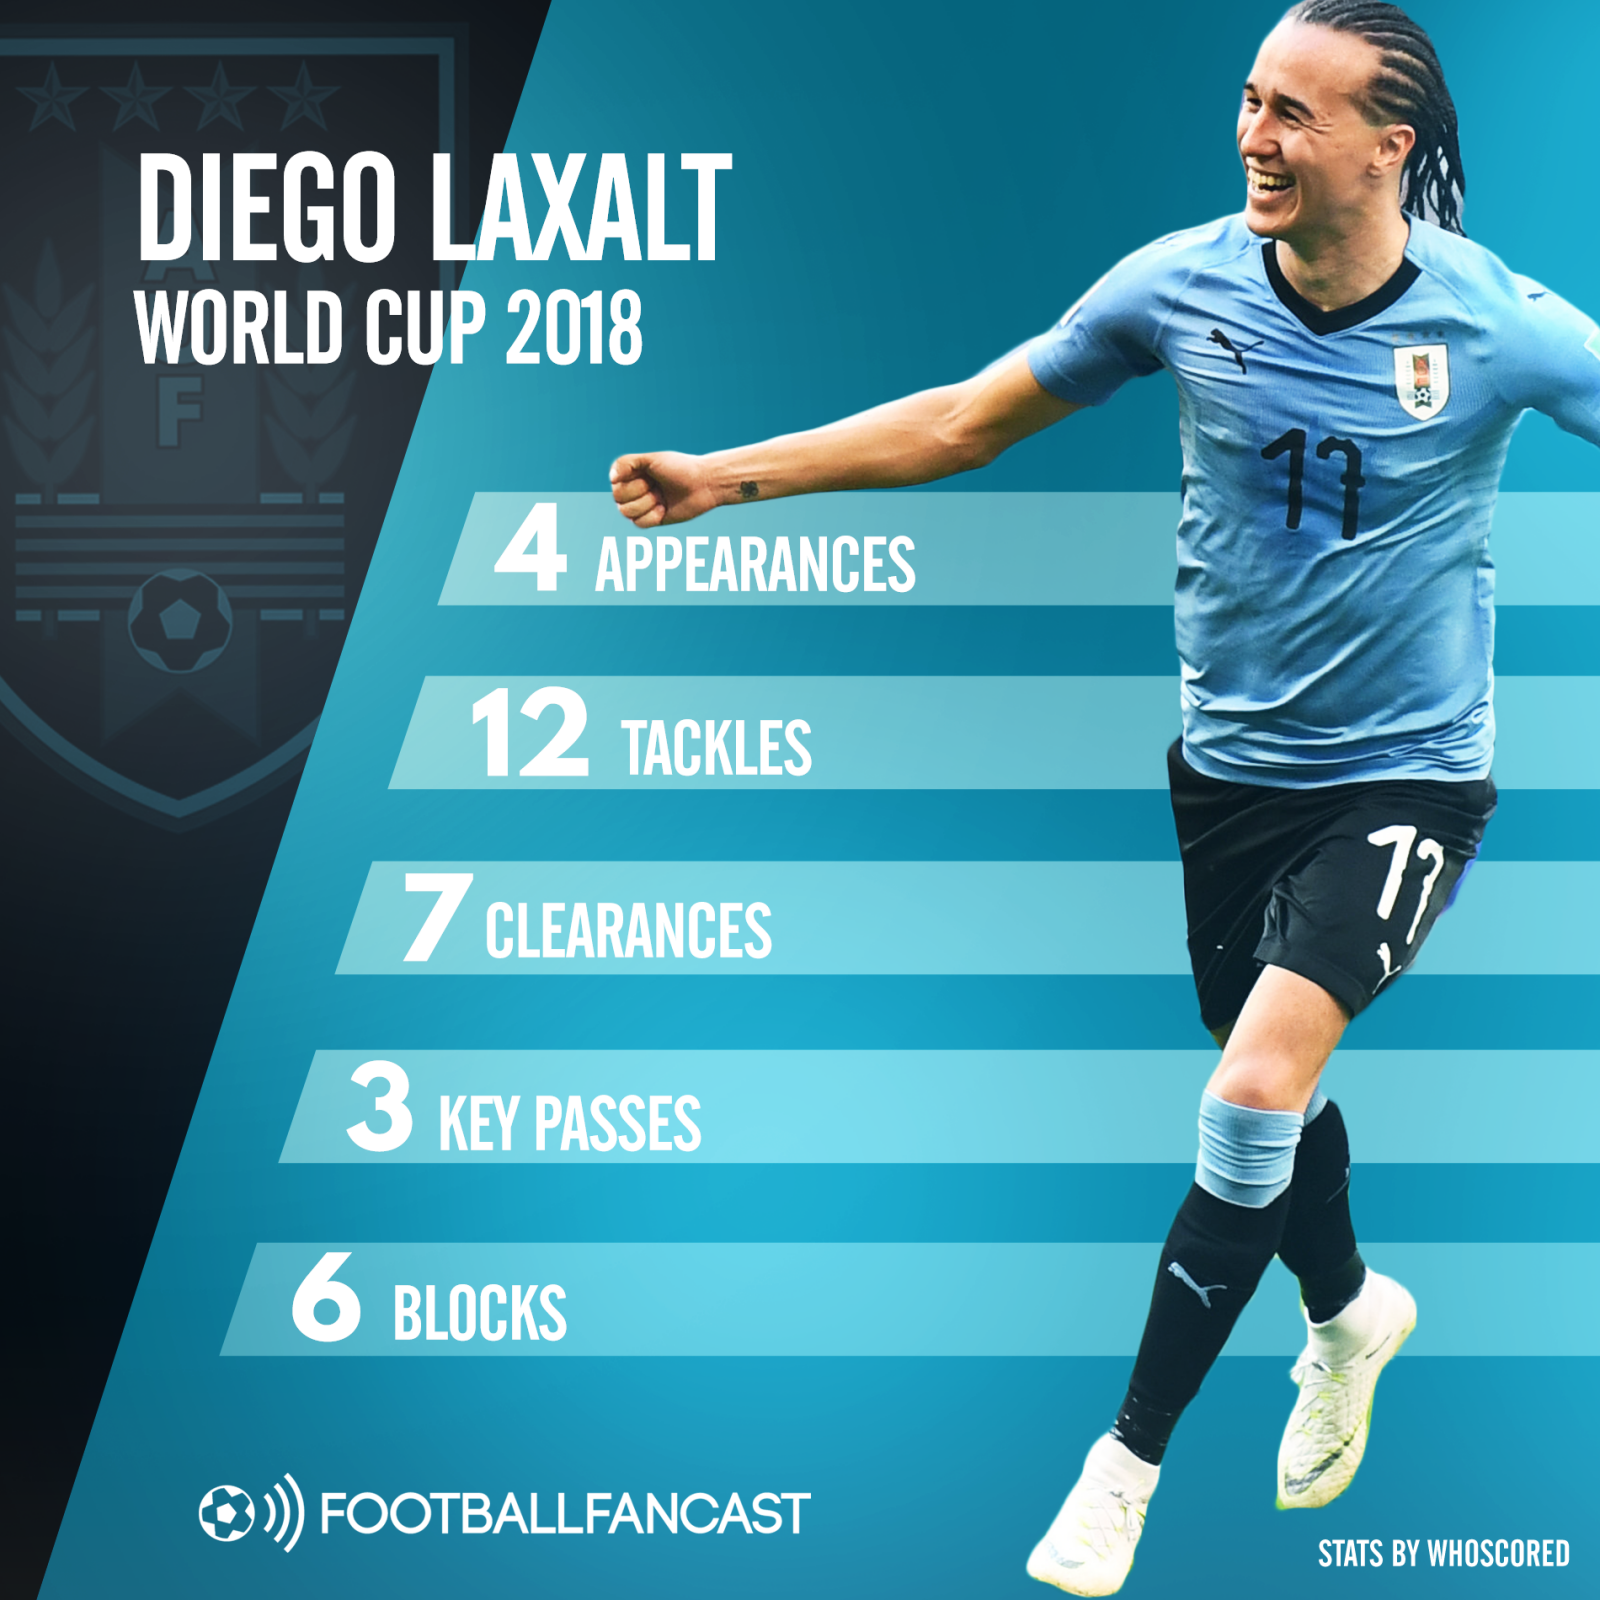 the most impressive stats from diego laxalt's world cup 2018